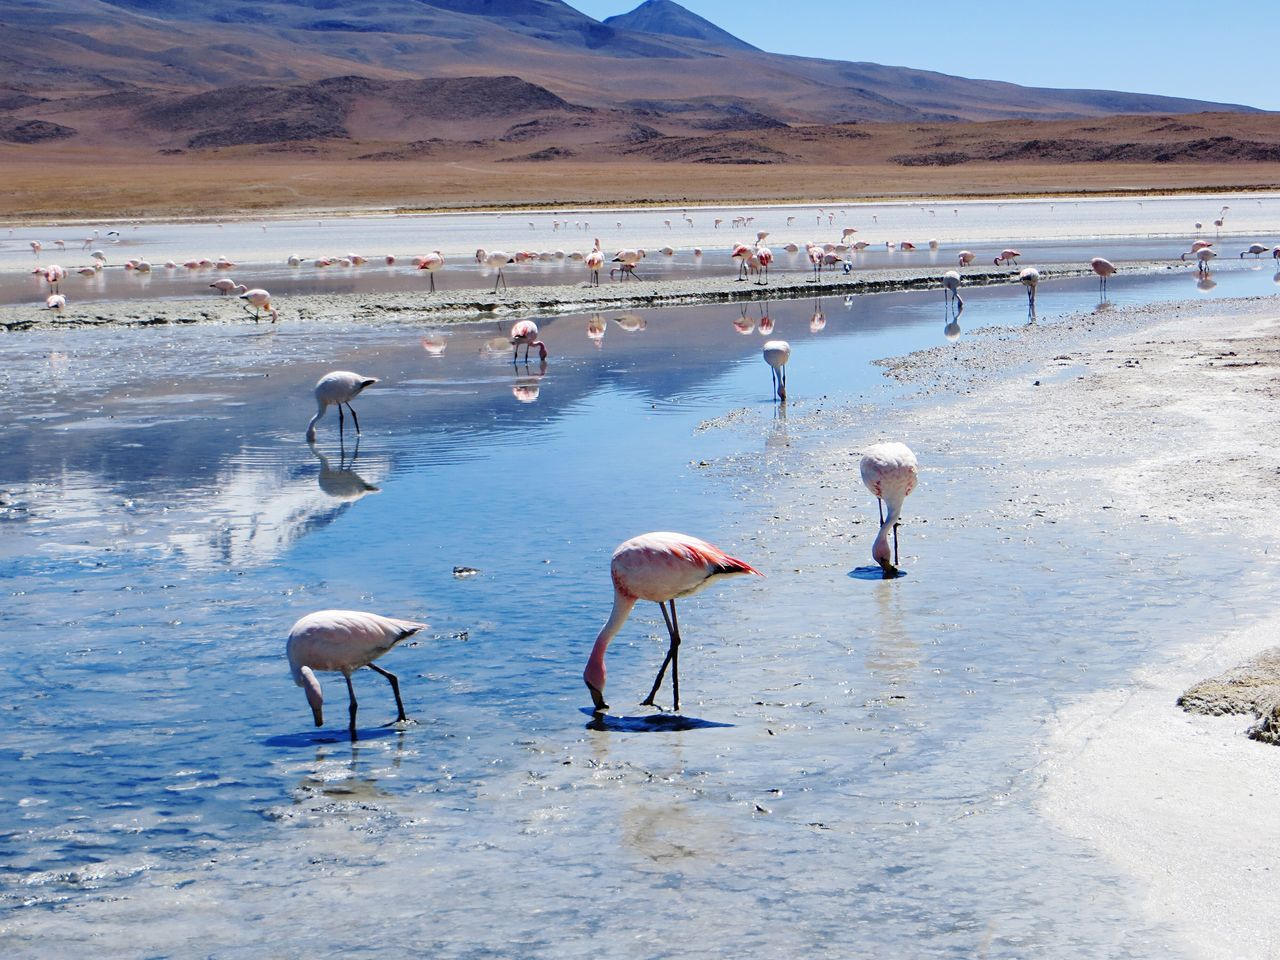 flamingo, animals in the wild, bird, animal themes, large group of animals, nature, animal wildlife, water, reflection, lake, no people, day, outdoors, colony, beauty in nature, scenics, sky